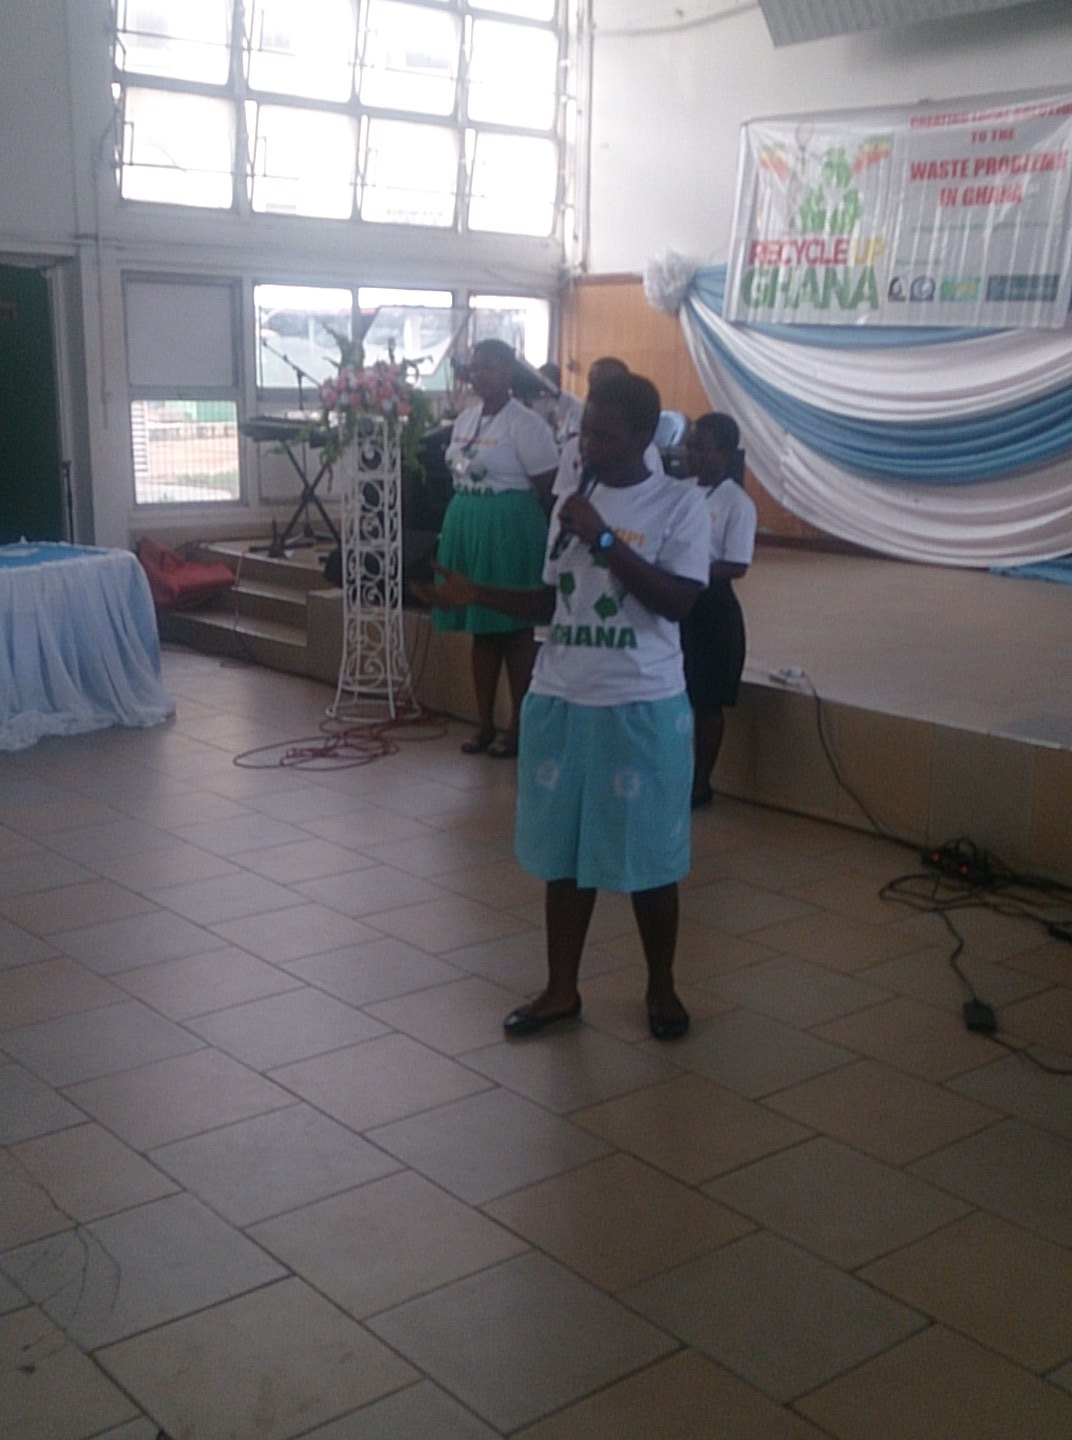 Day 9: Grand Finale of Recycle Up Ghana